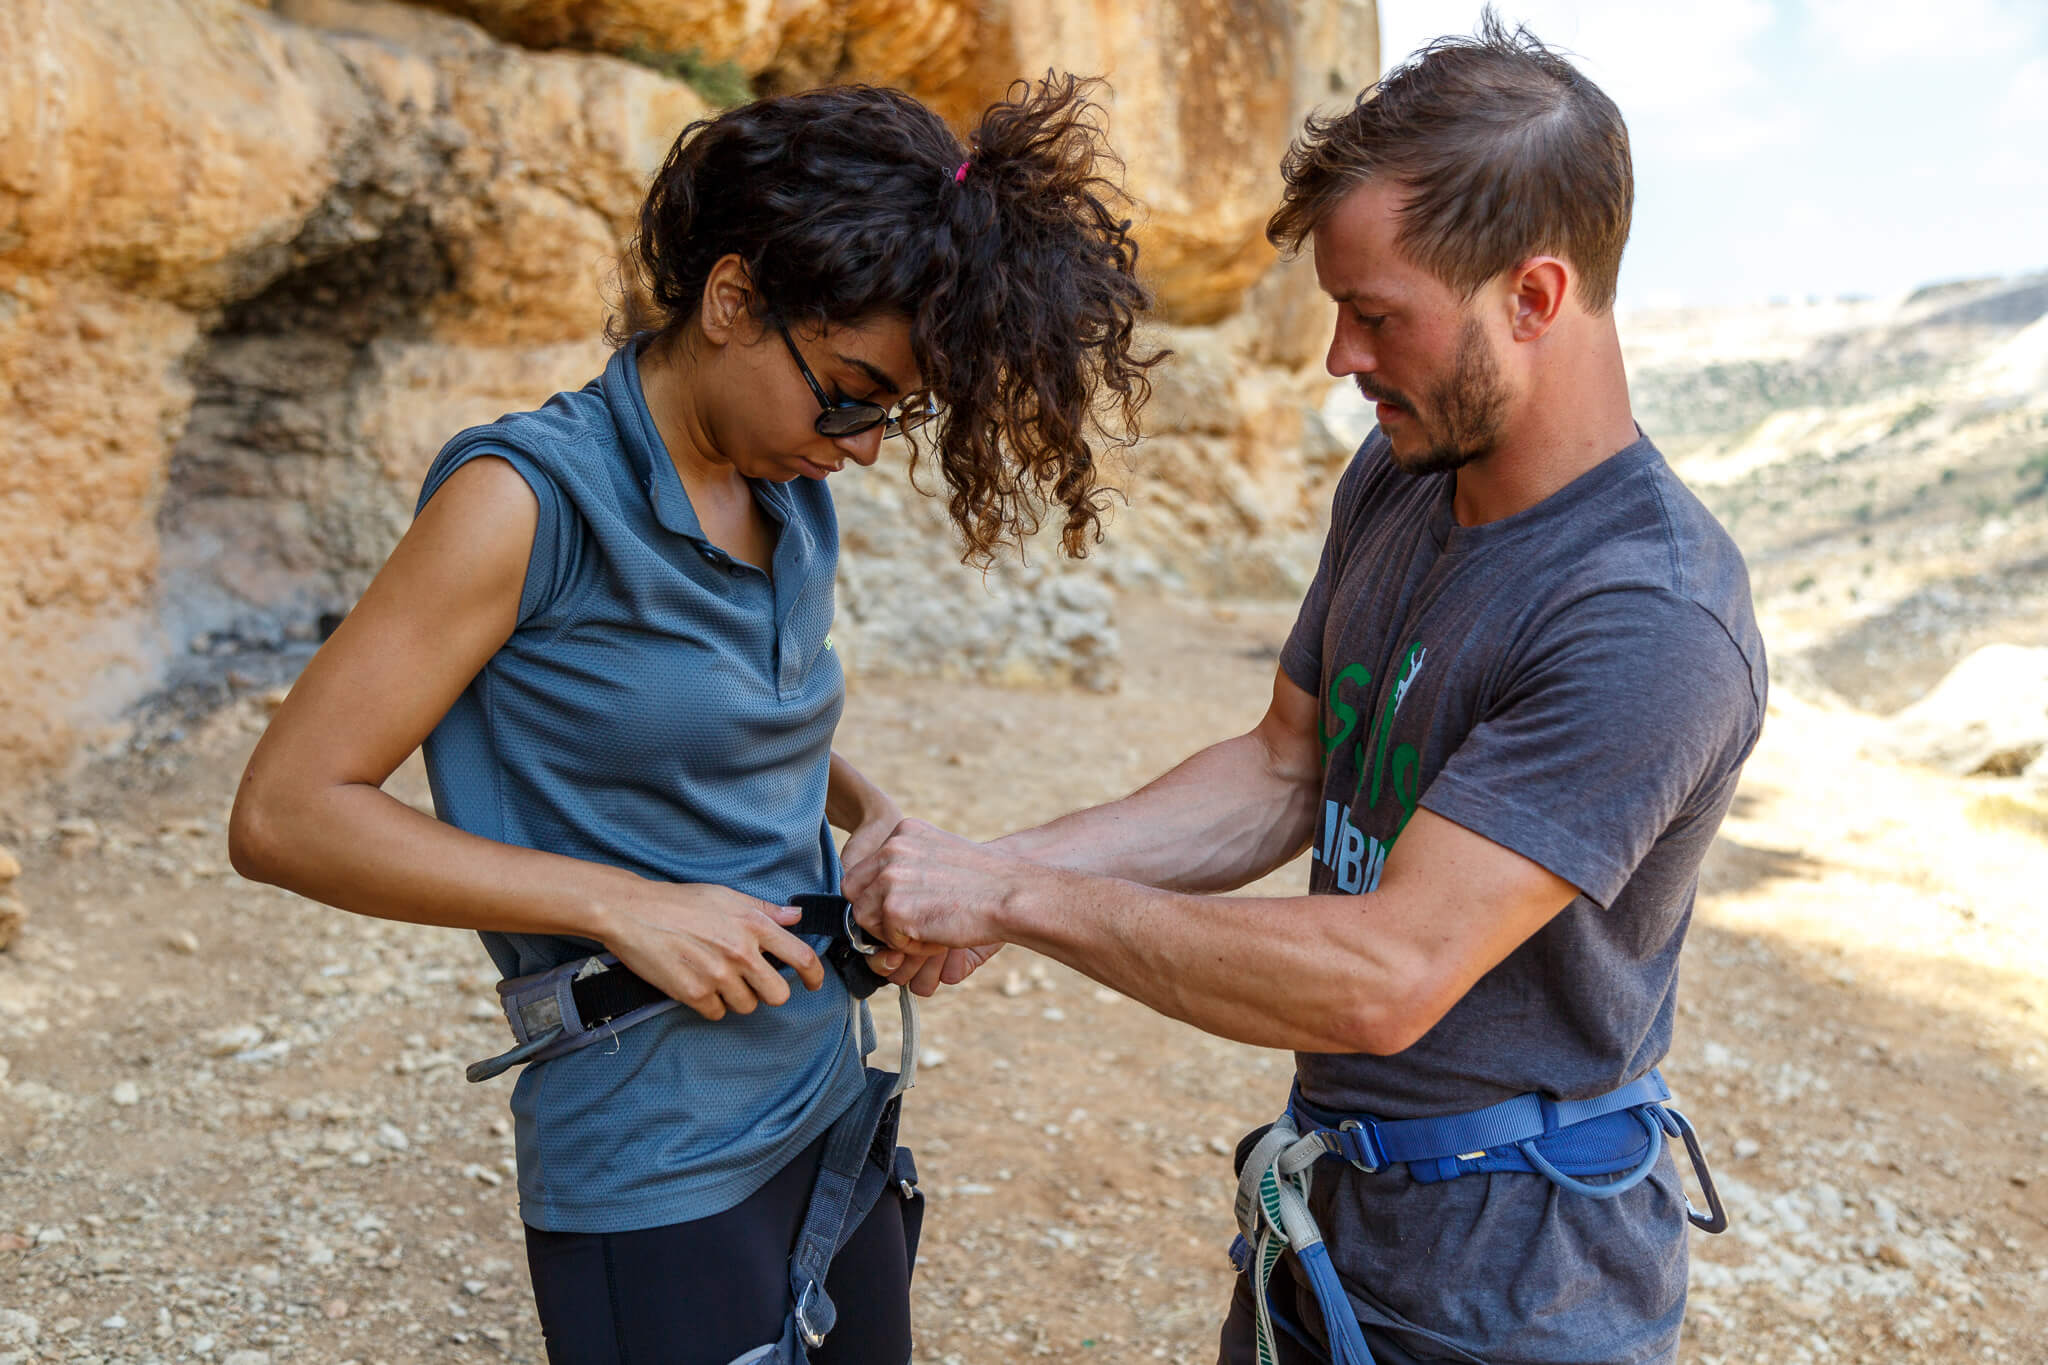 Getting ready to climb, Tyler Myers helps Palestinian climber Aseel into her harness. (Photo: Miriam Deprez)